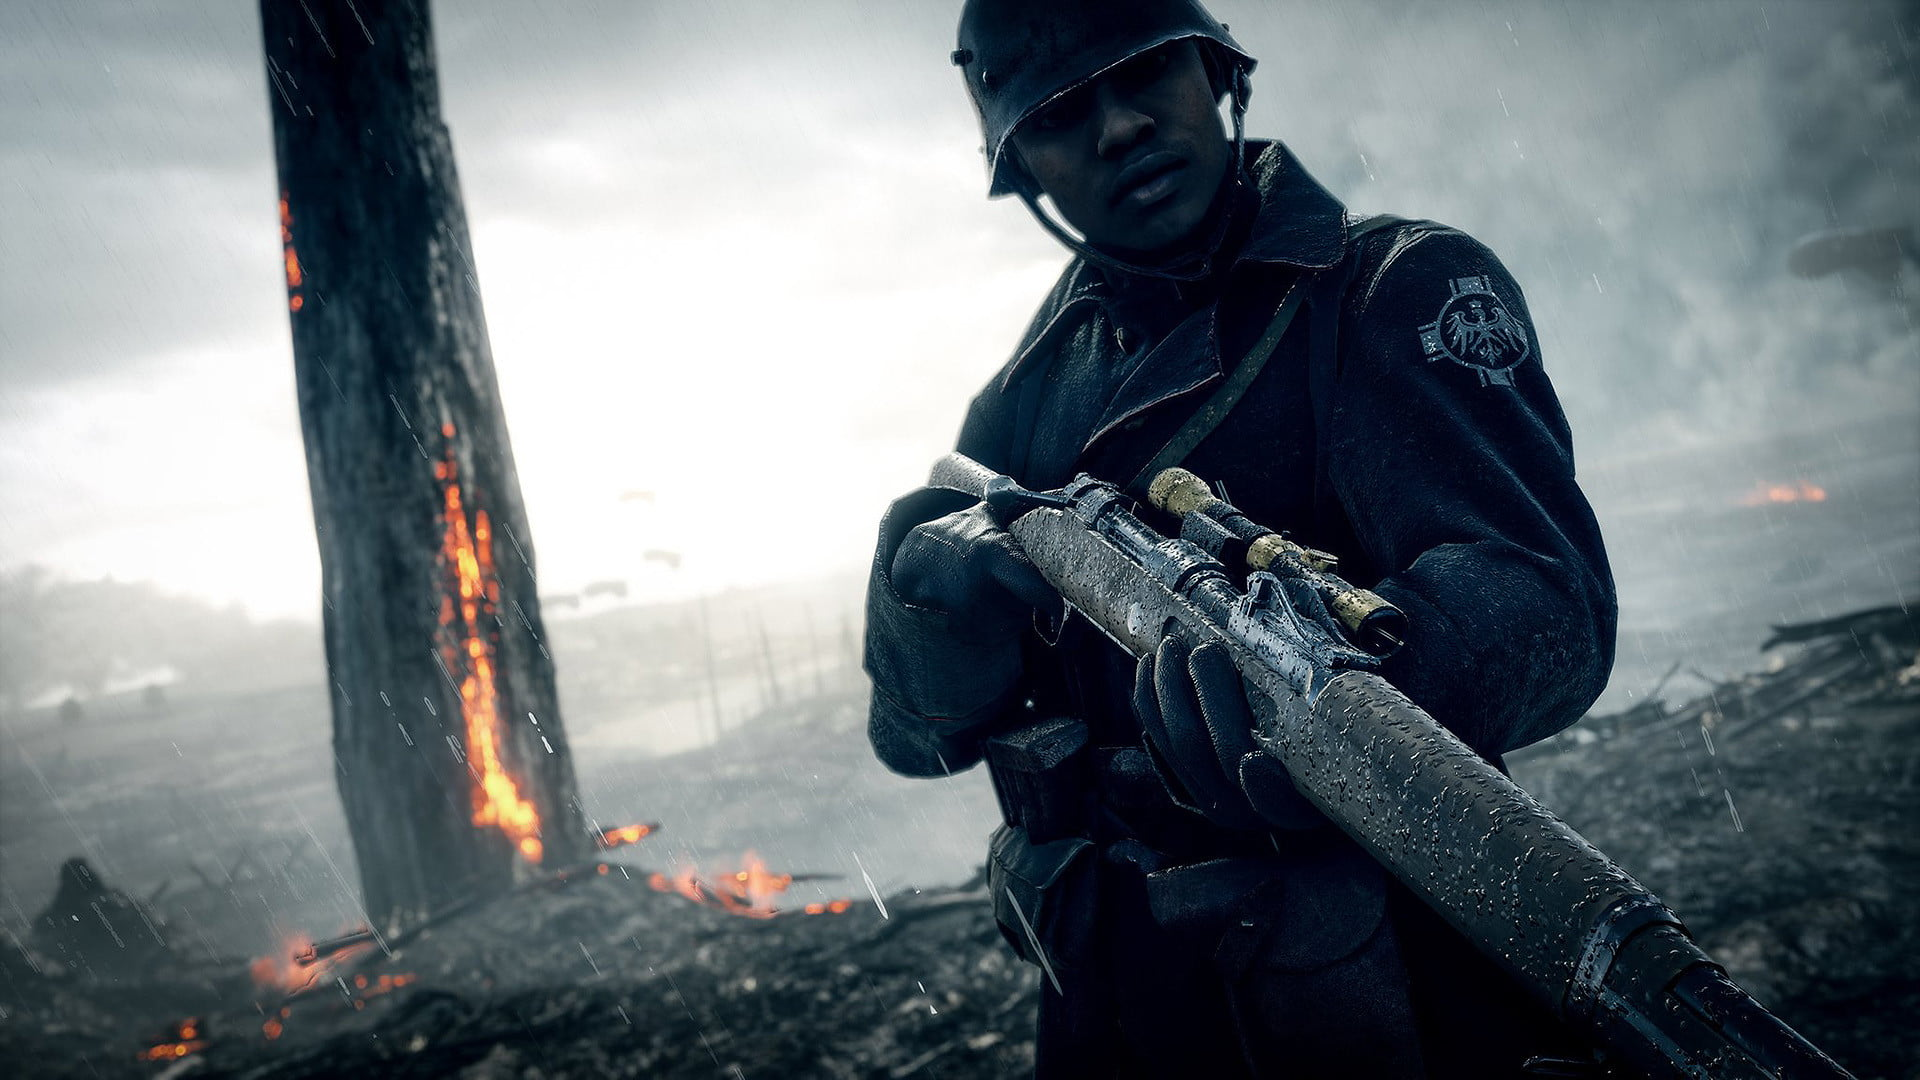 Battlefield 1 Is Free to Play This Weekend On Xbox One, PC | Digital